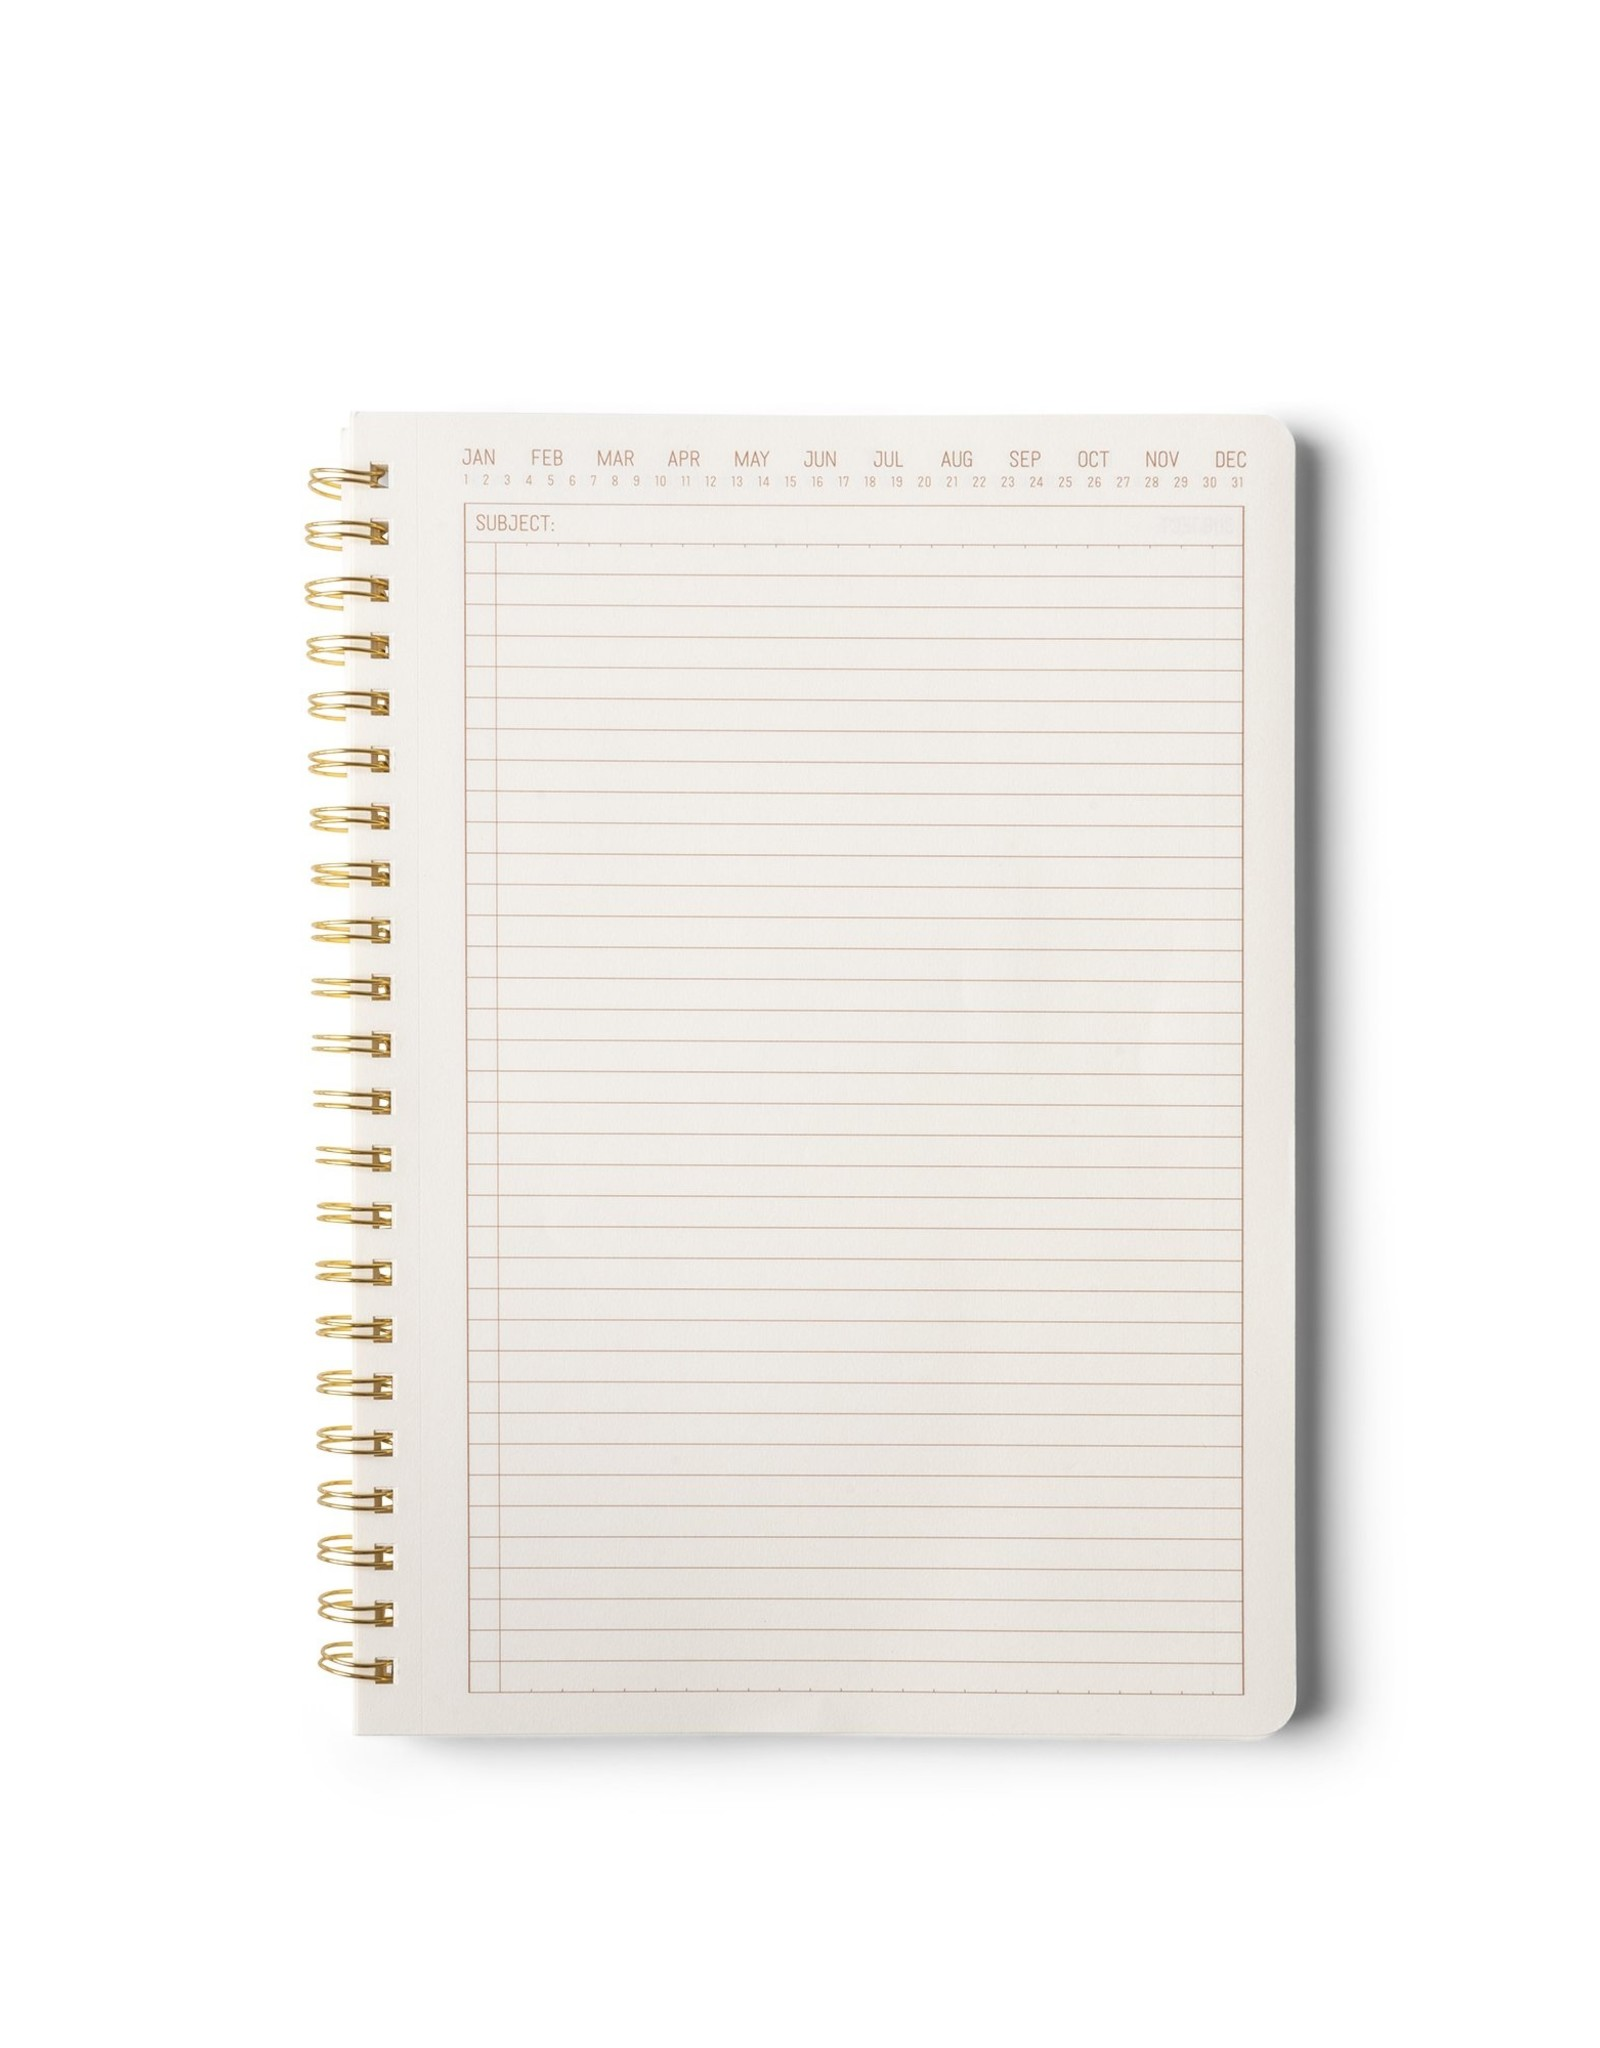 Designworks Ink Textured Paper Cover Twin Wire Crest A5 Notebook